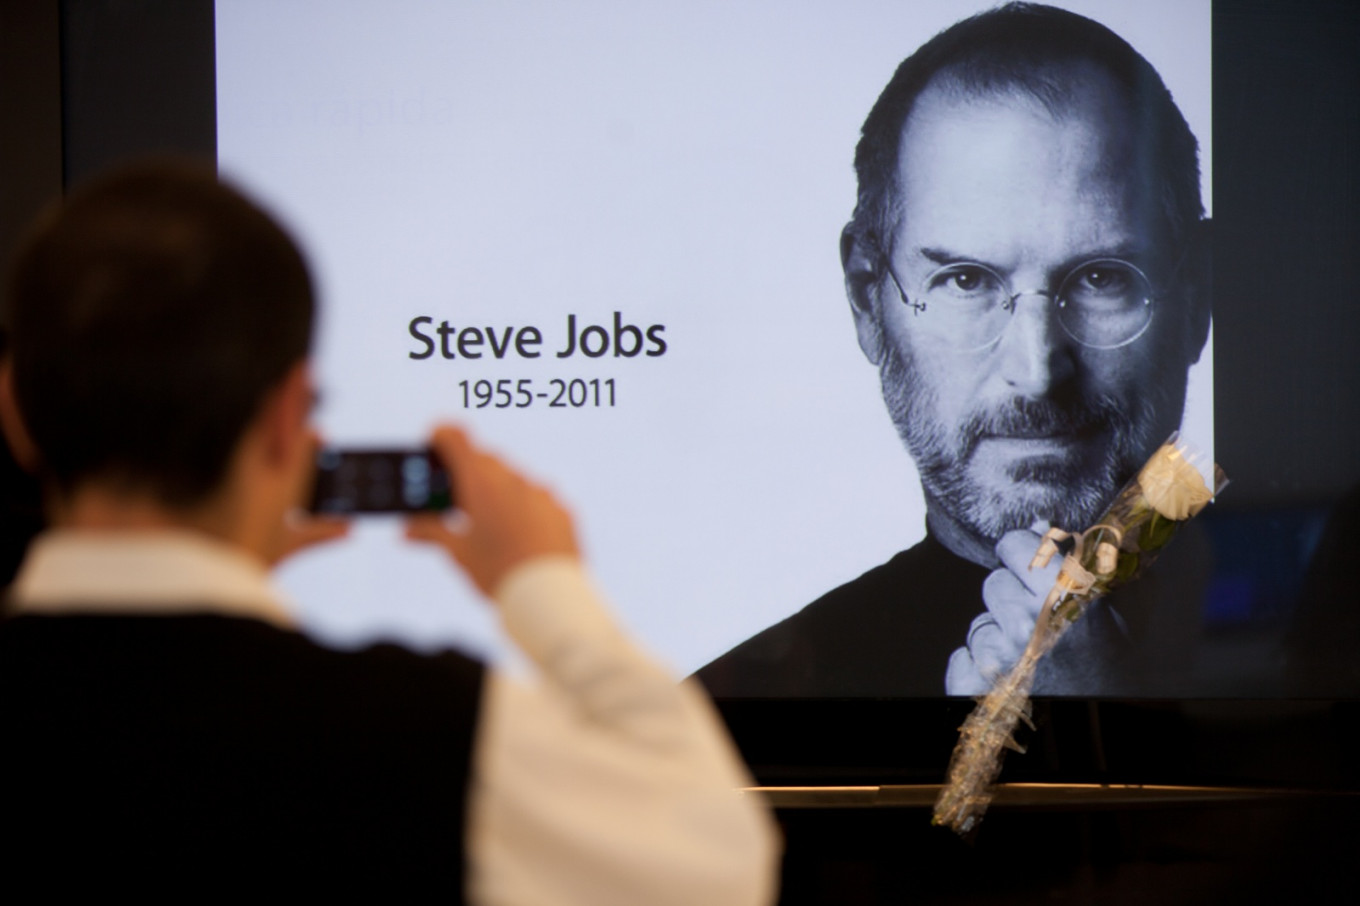 Gates says Steve Jobs cast 'spells' to keep Apple from dying